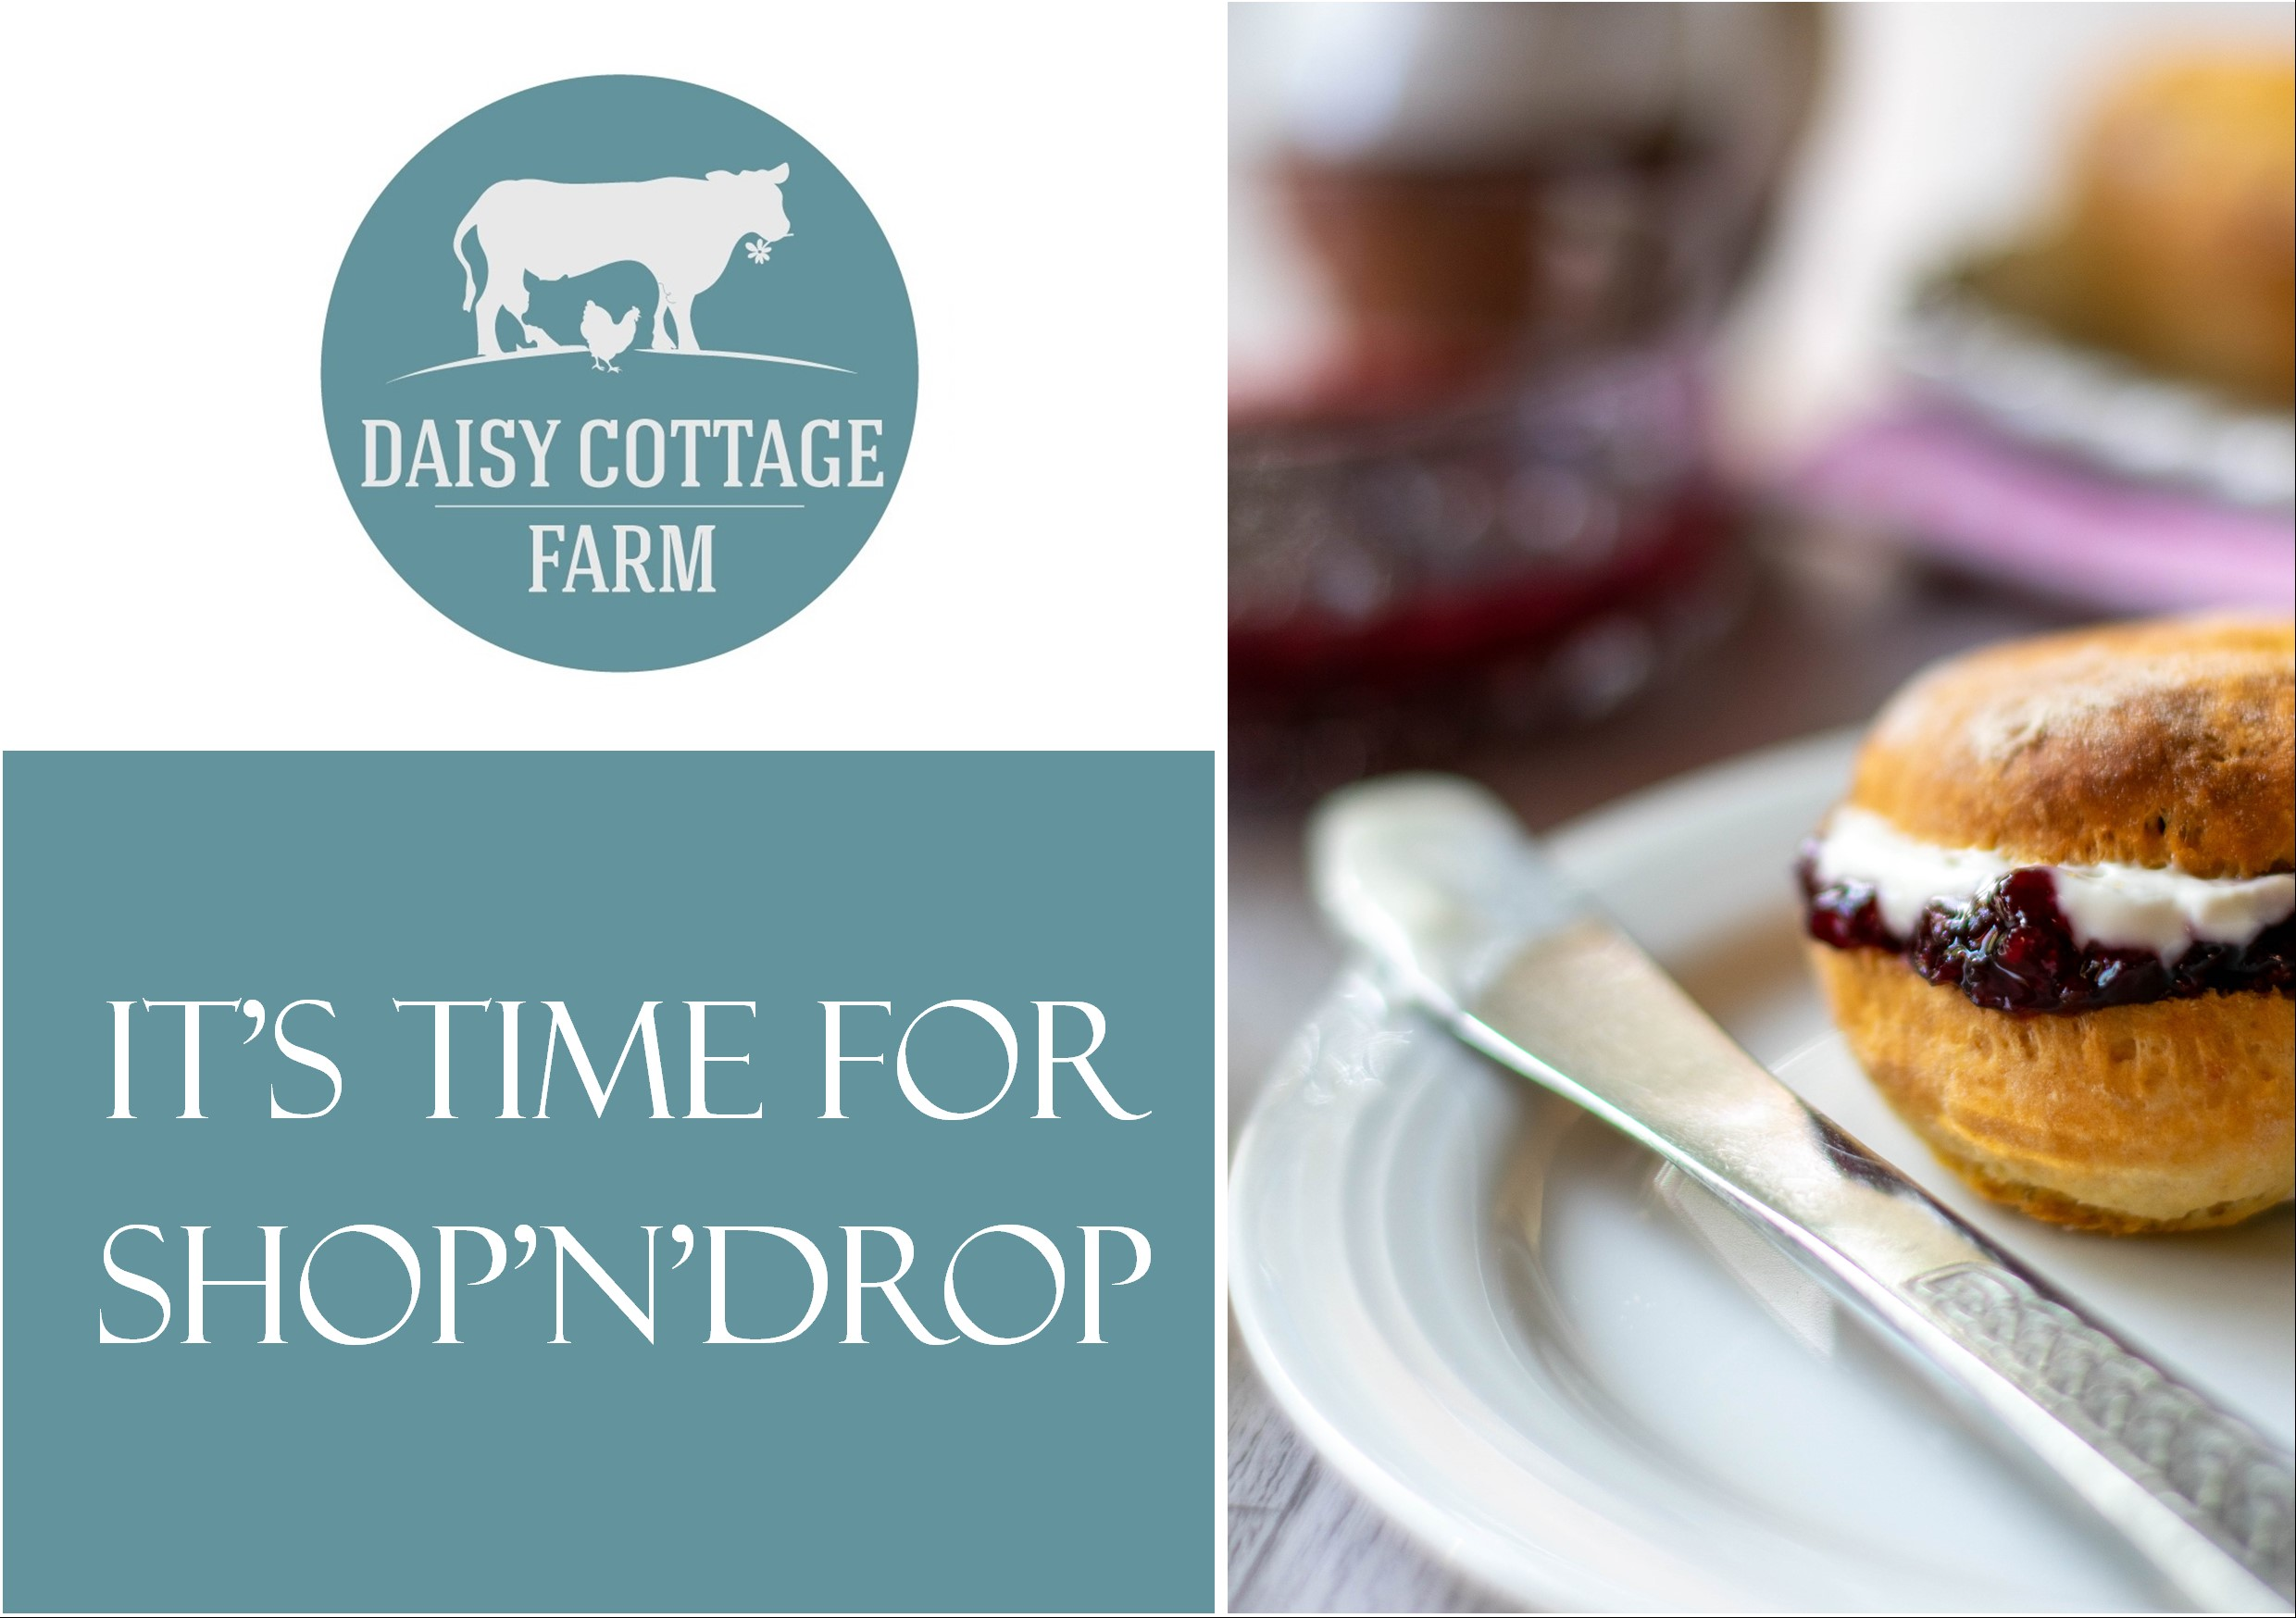 Daisy Cottage Farm Shop'n'Drop